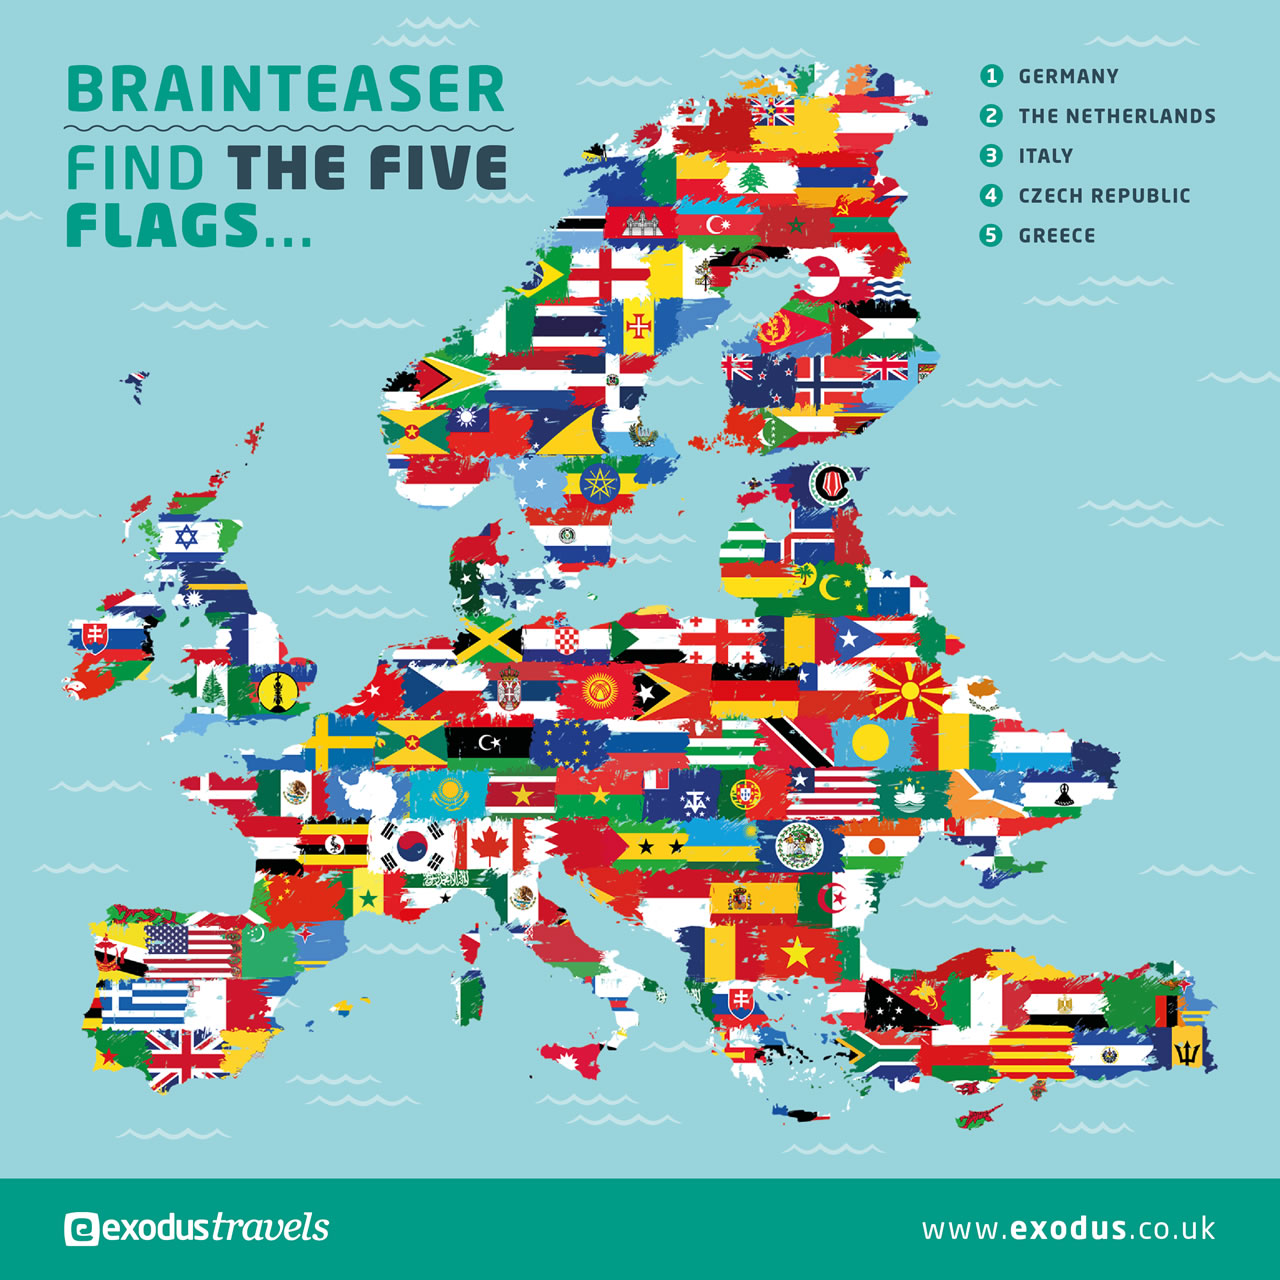 Find the five flags